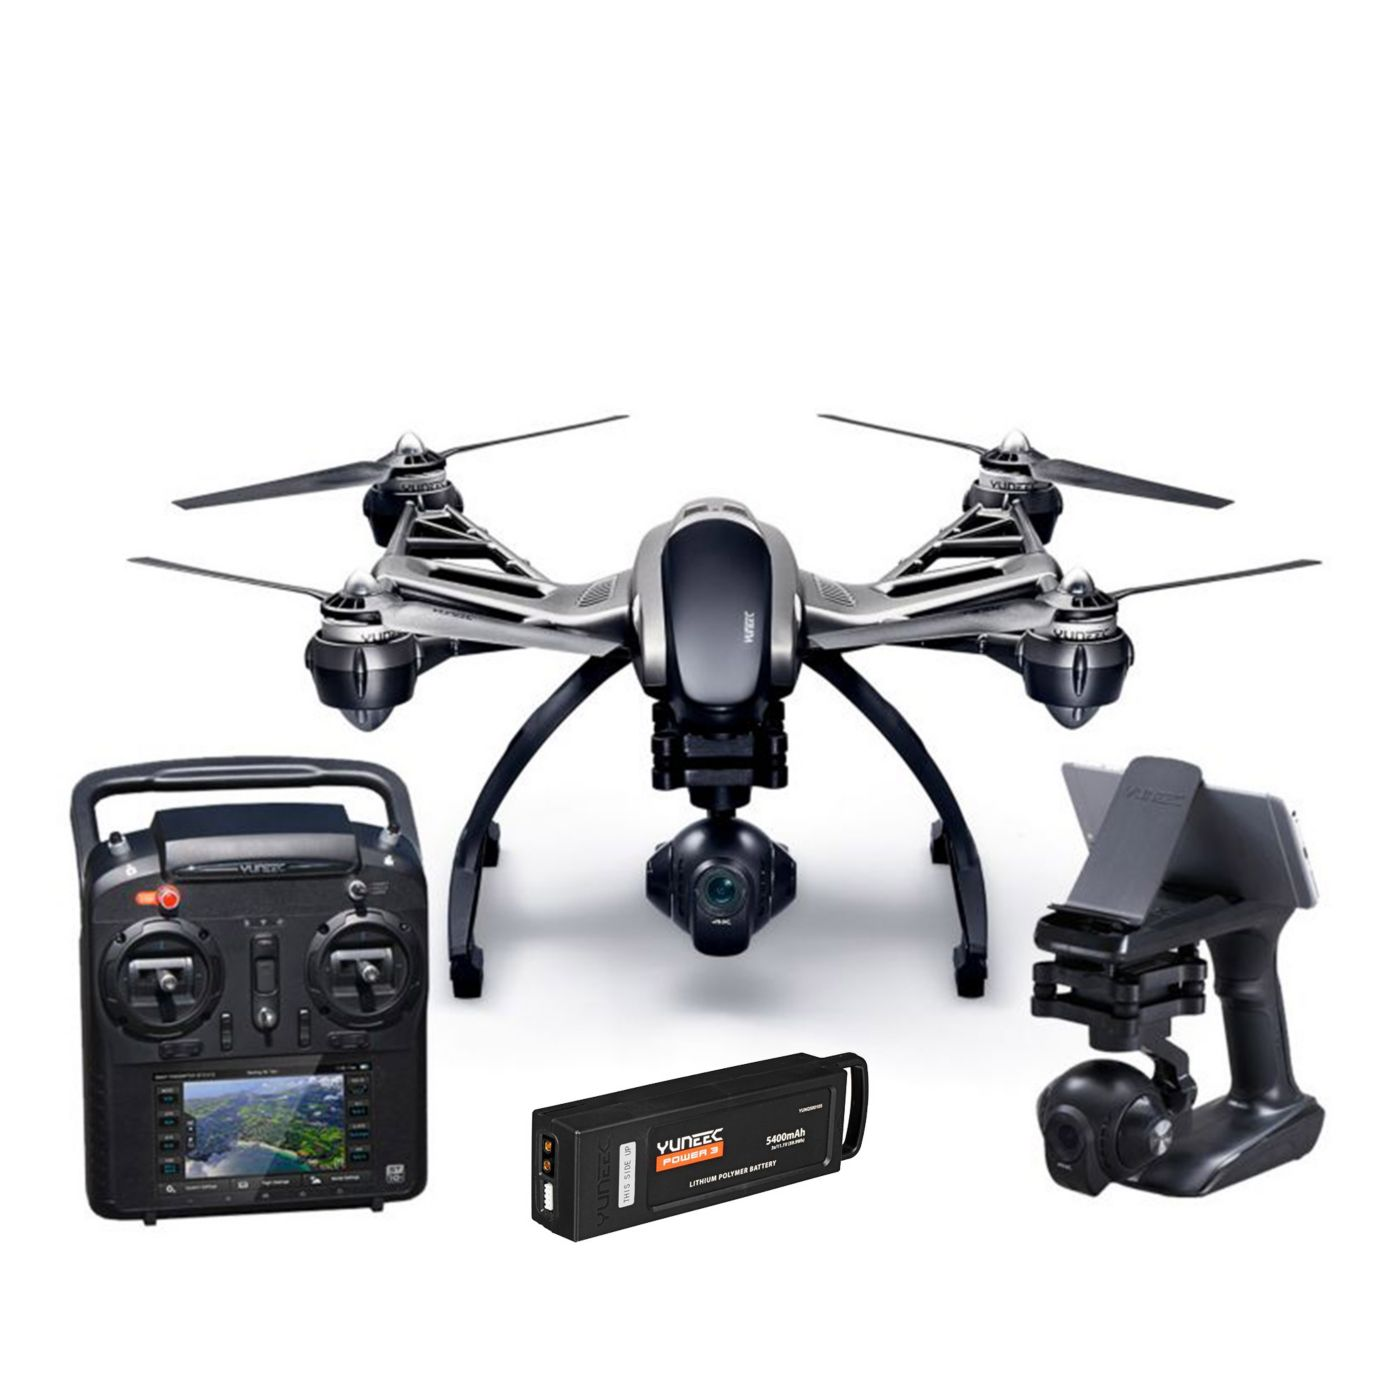 Image for Q500 4K RTF with ST10+, CGO3, 1 Battery, SteadyGrip from HorizonHobby